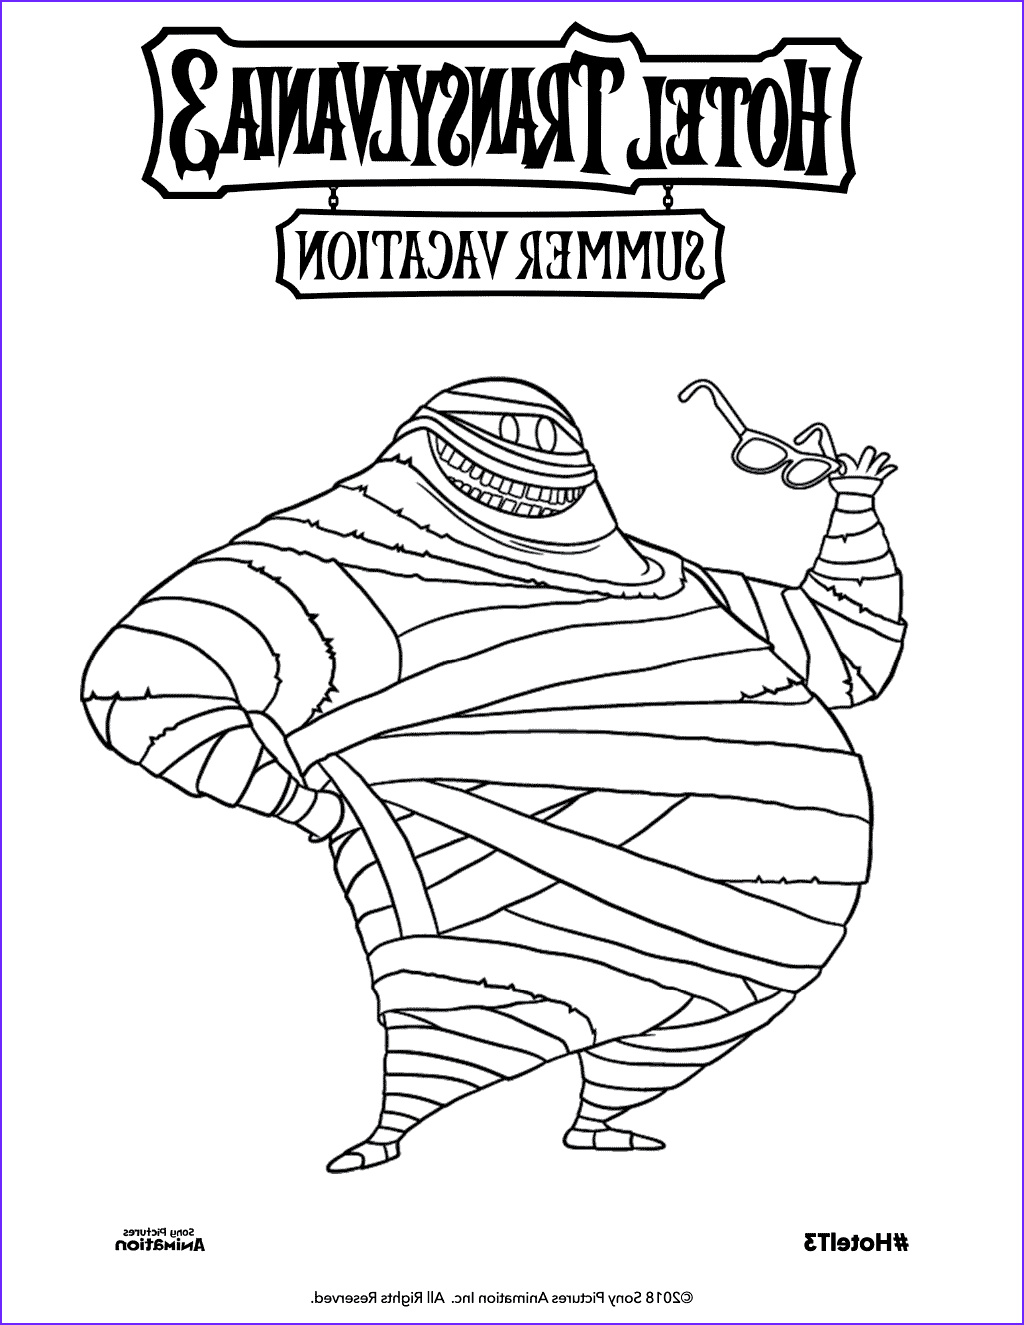 Hotel Transylvania 3 Coloring Page Awesome Gallery Free Printable Hotel Transylvania 3 Coloring Pages